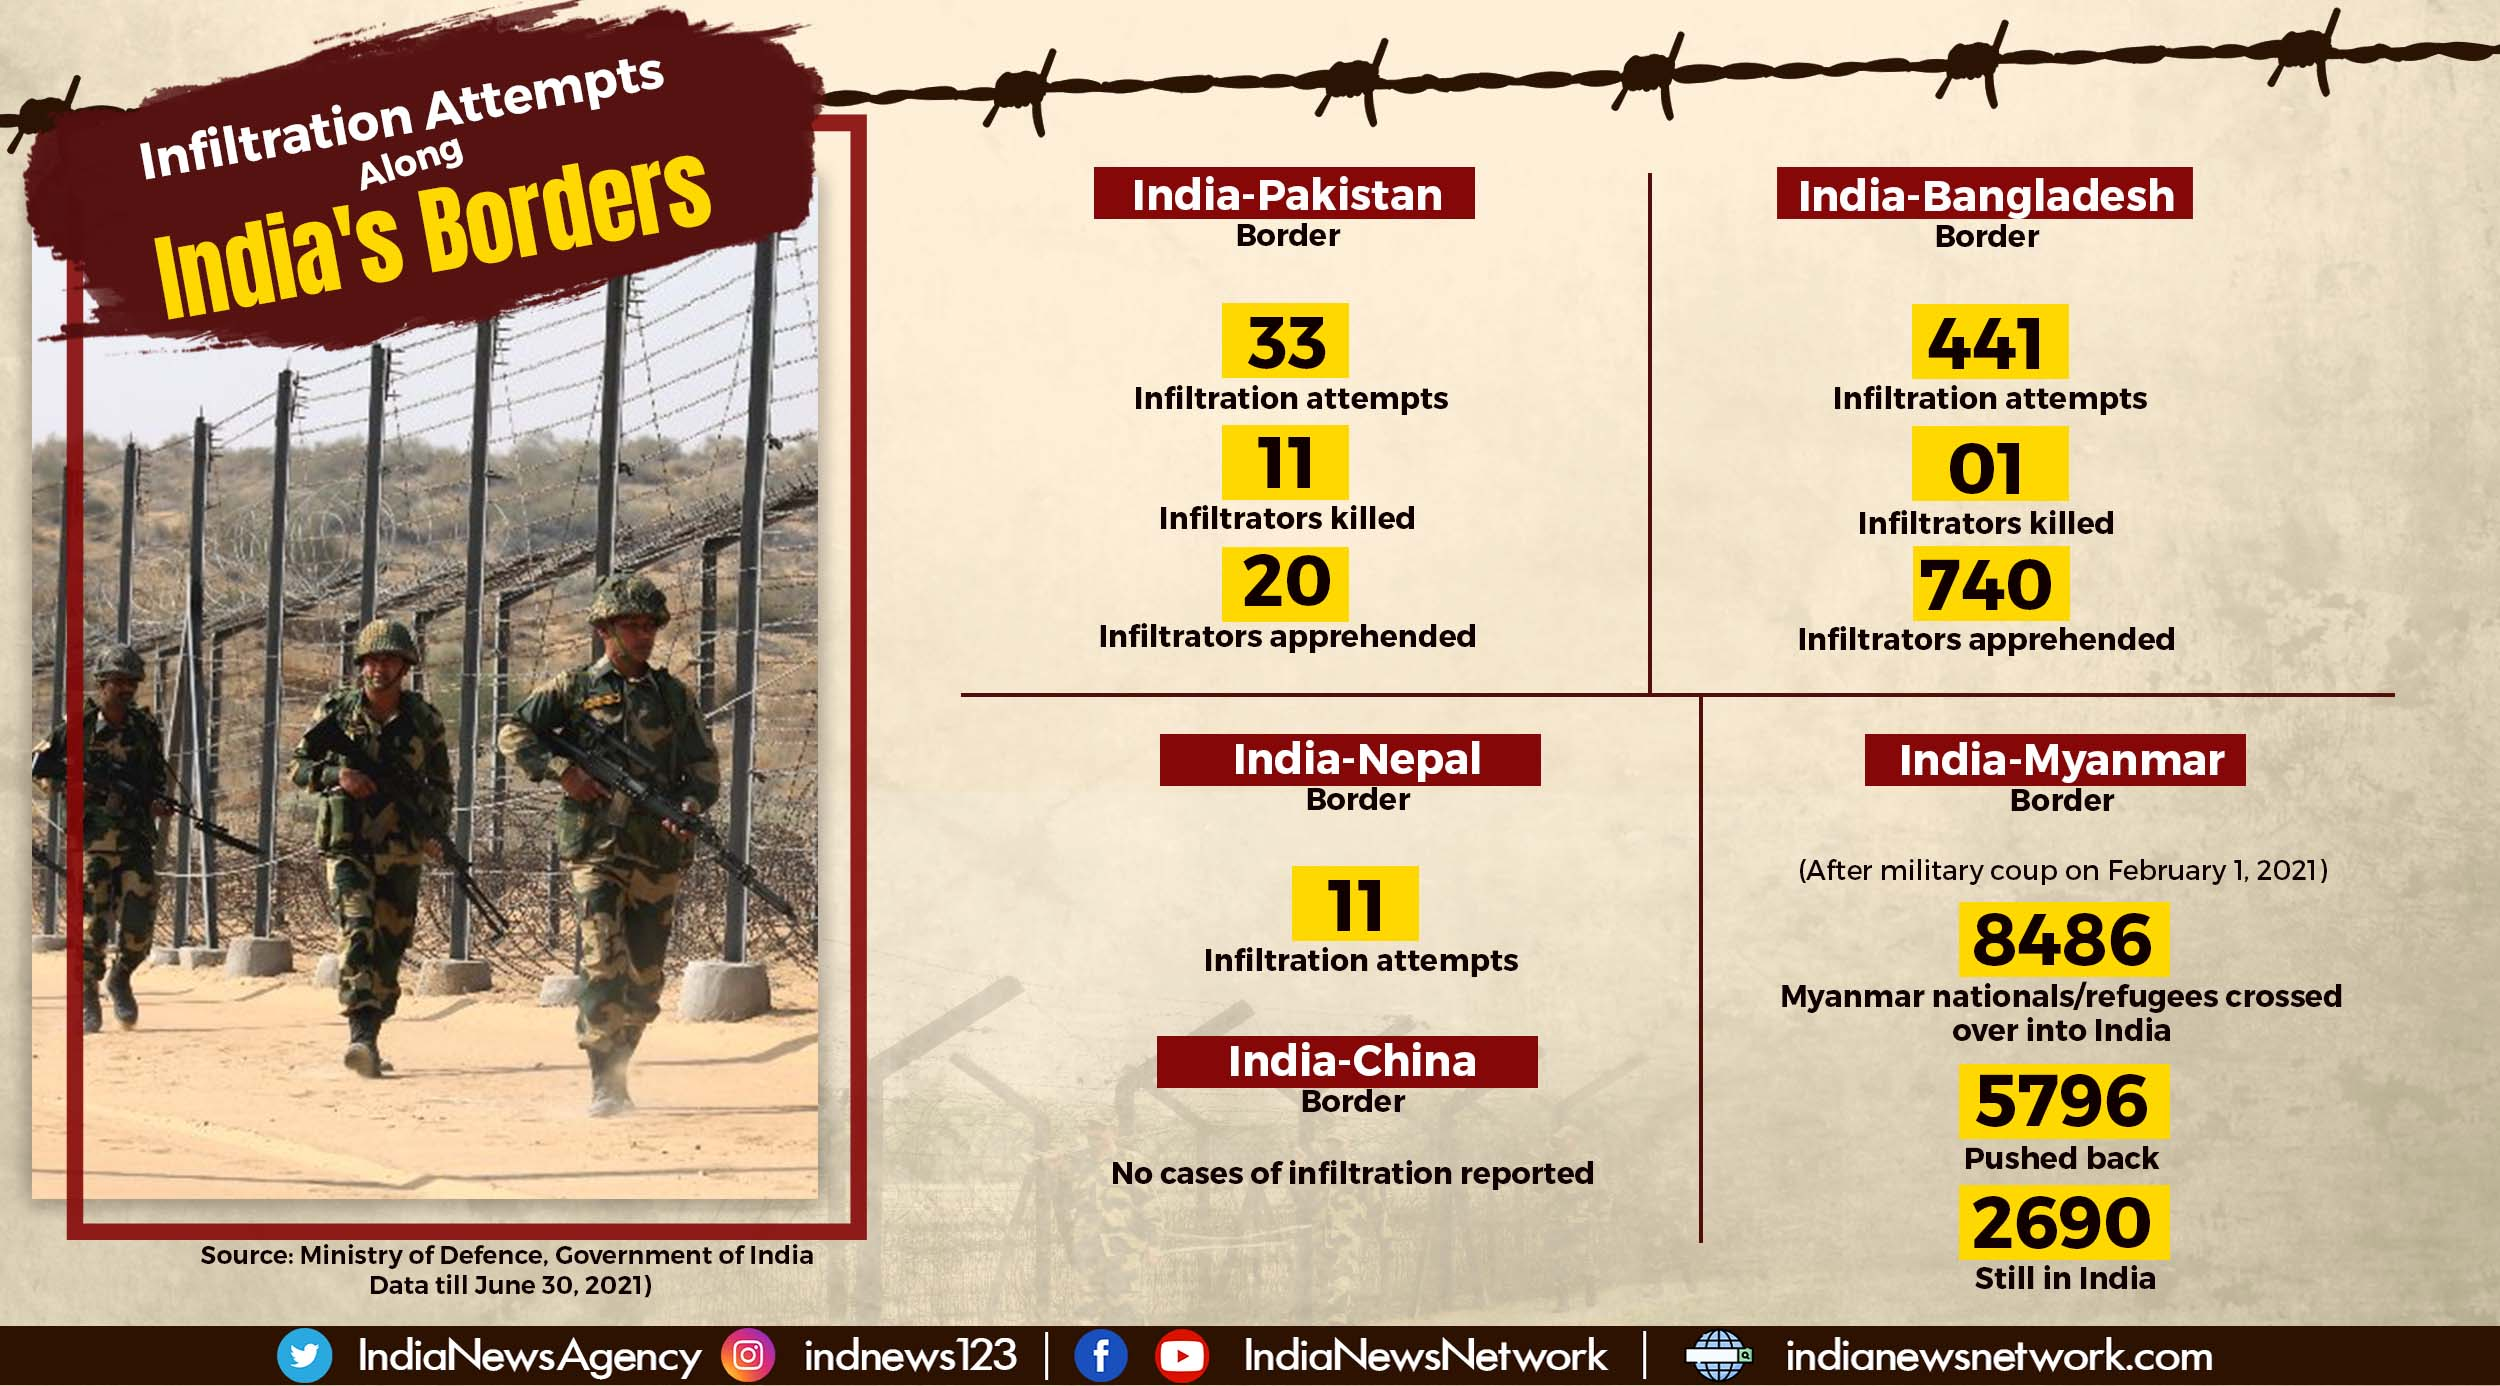 A look at infiltration attempts along India's borders during 2021